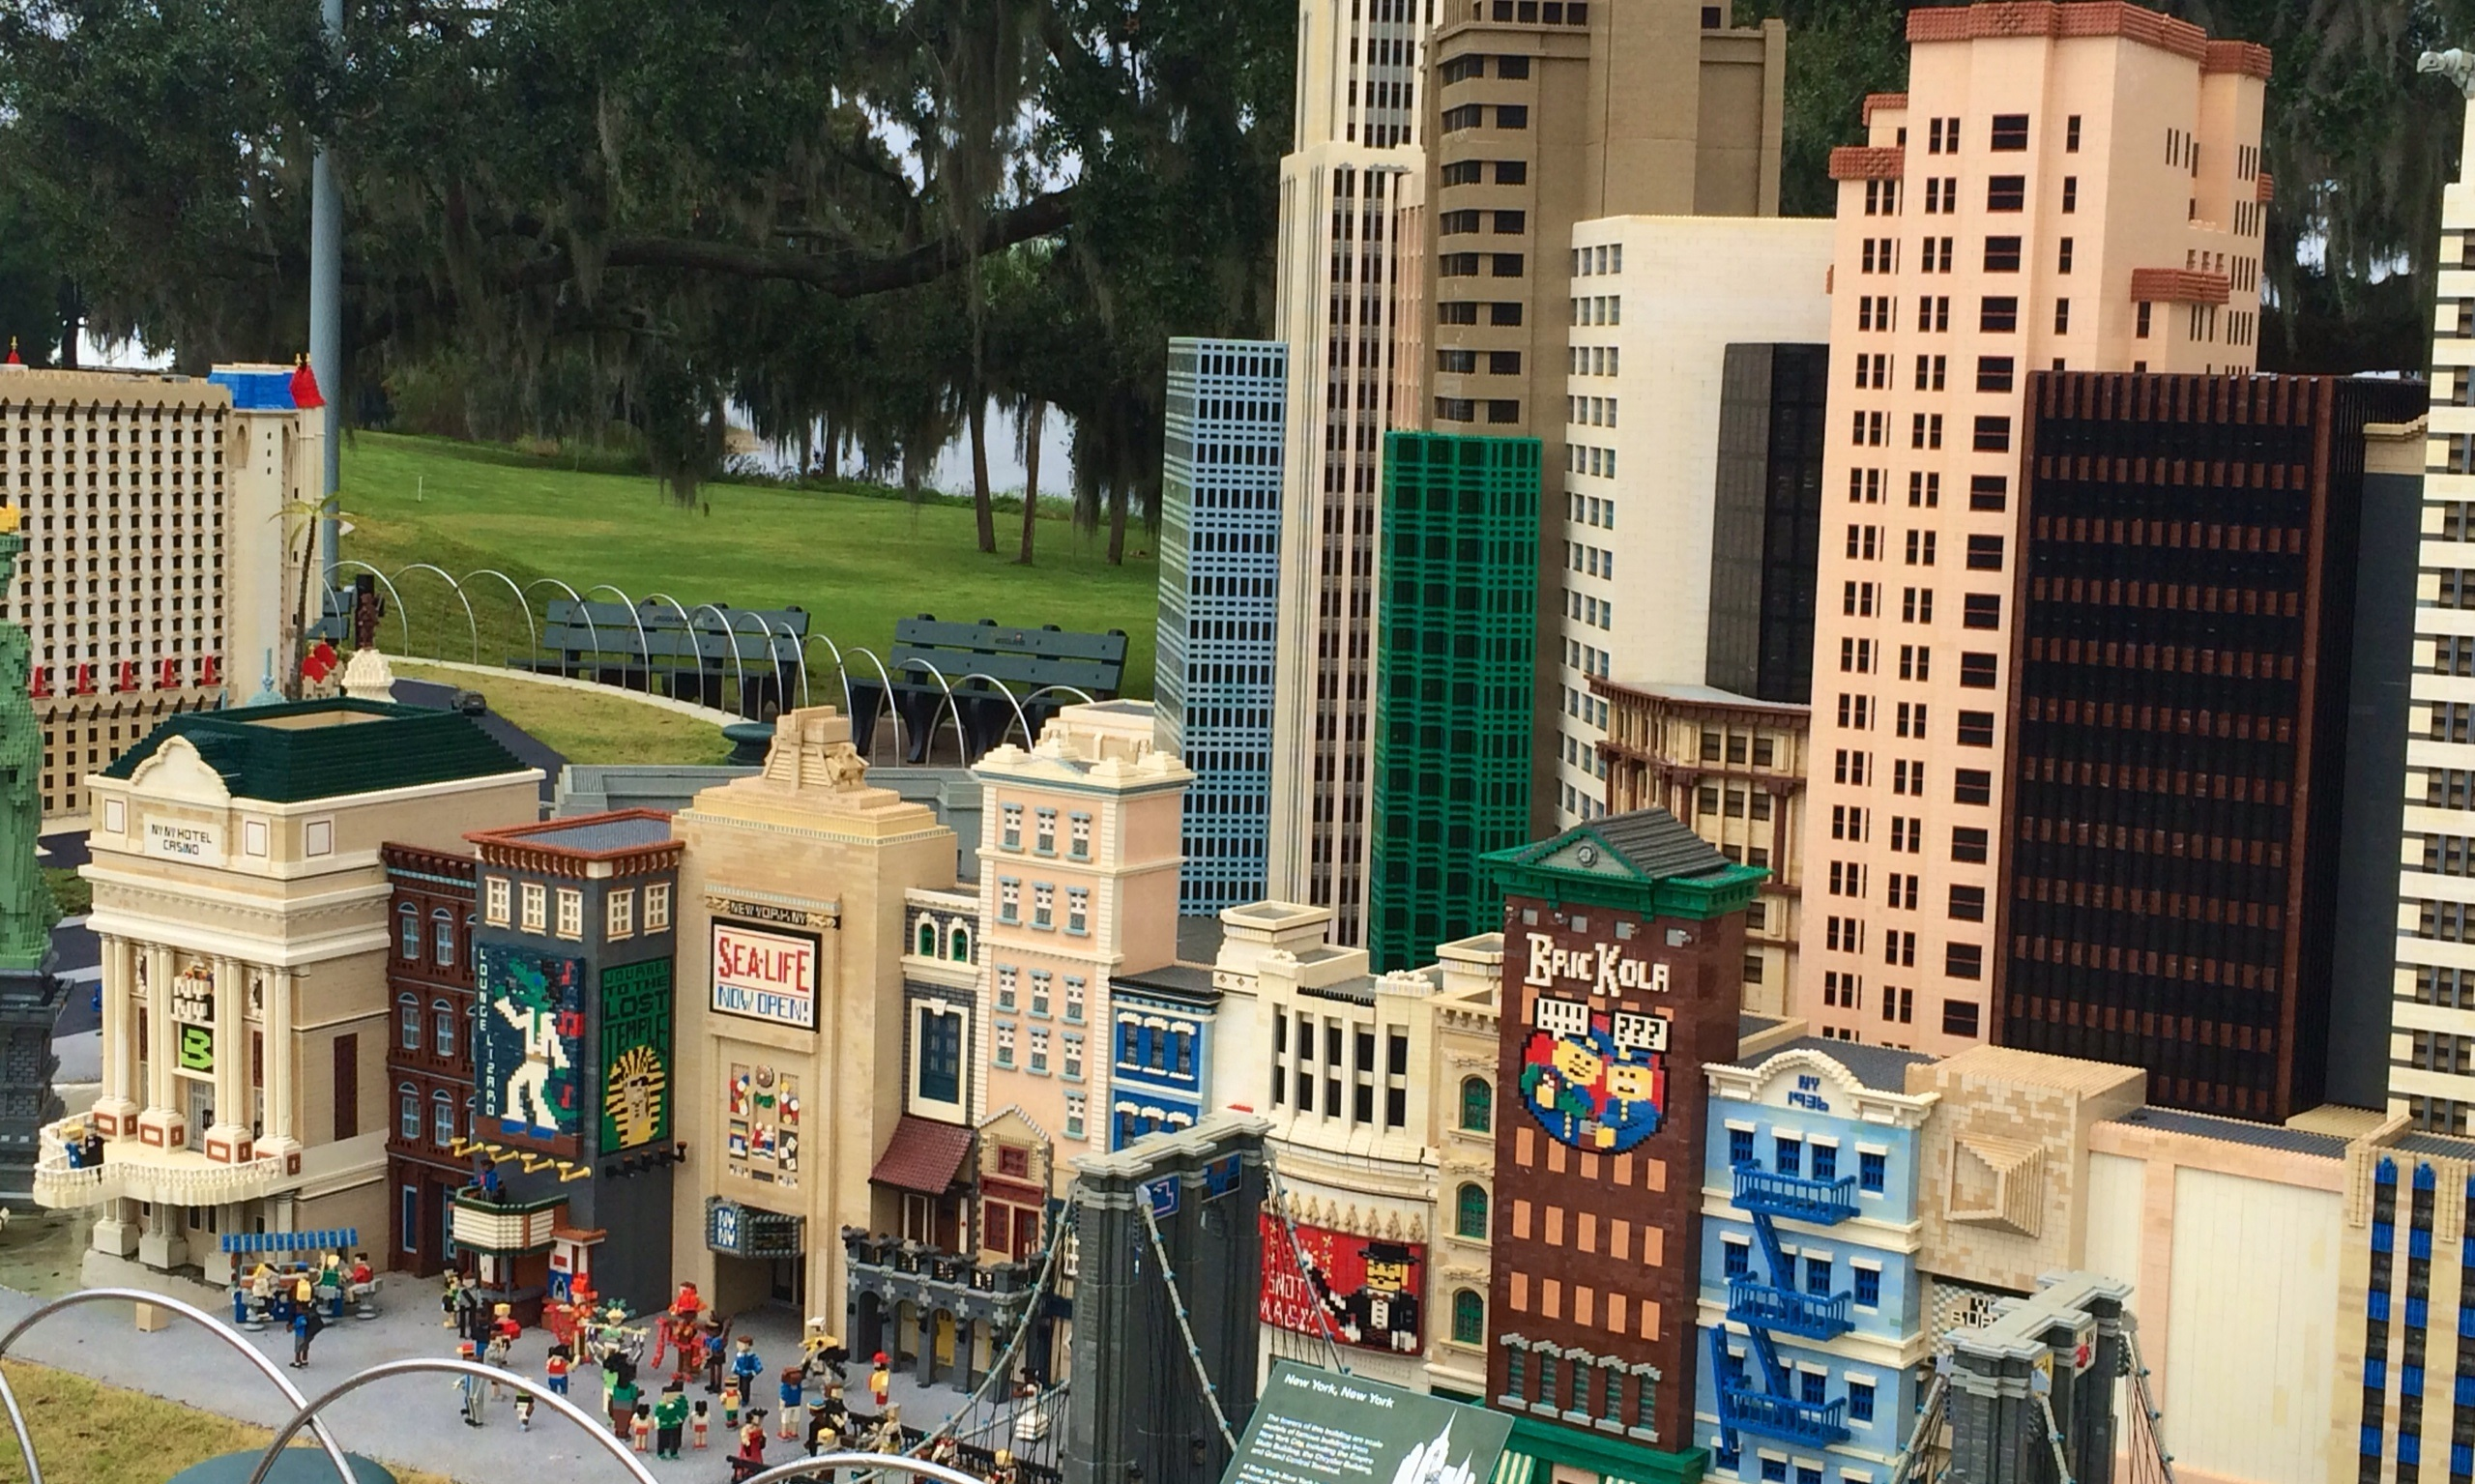 daytona florida map with 10 Awesome Things About Legoland Florida on Earthquakes In Florida Magnitude 37 Strikes Off Of Daytona Beach in addition 2445853855 furthermore GeneralInfo moreover Two Flea Markets One Location furthermore Kissimmee Go Karts.